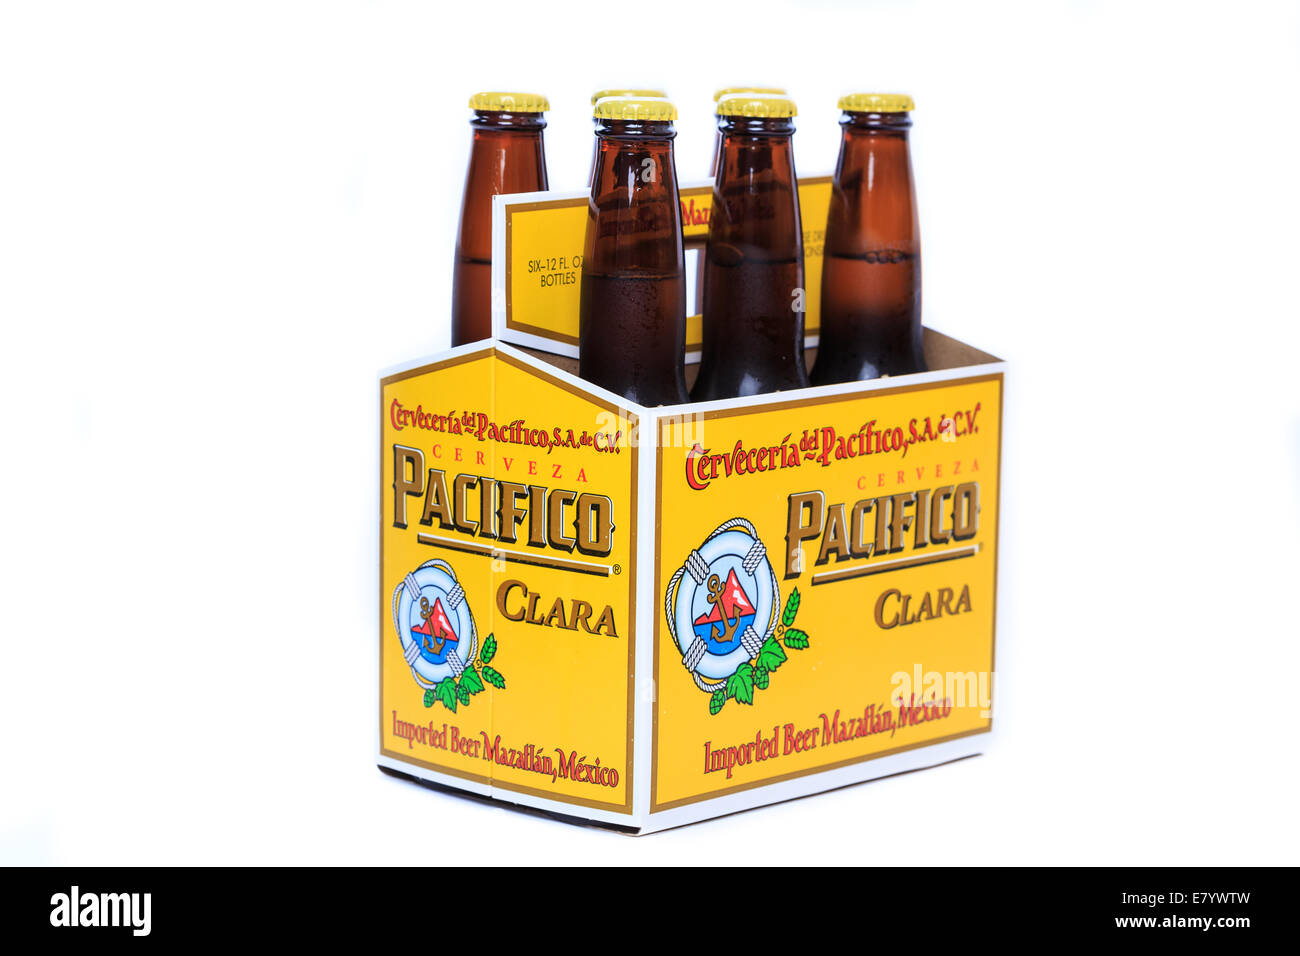 Cold and frosty Pacifico Clara Beer Stock Photo